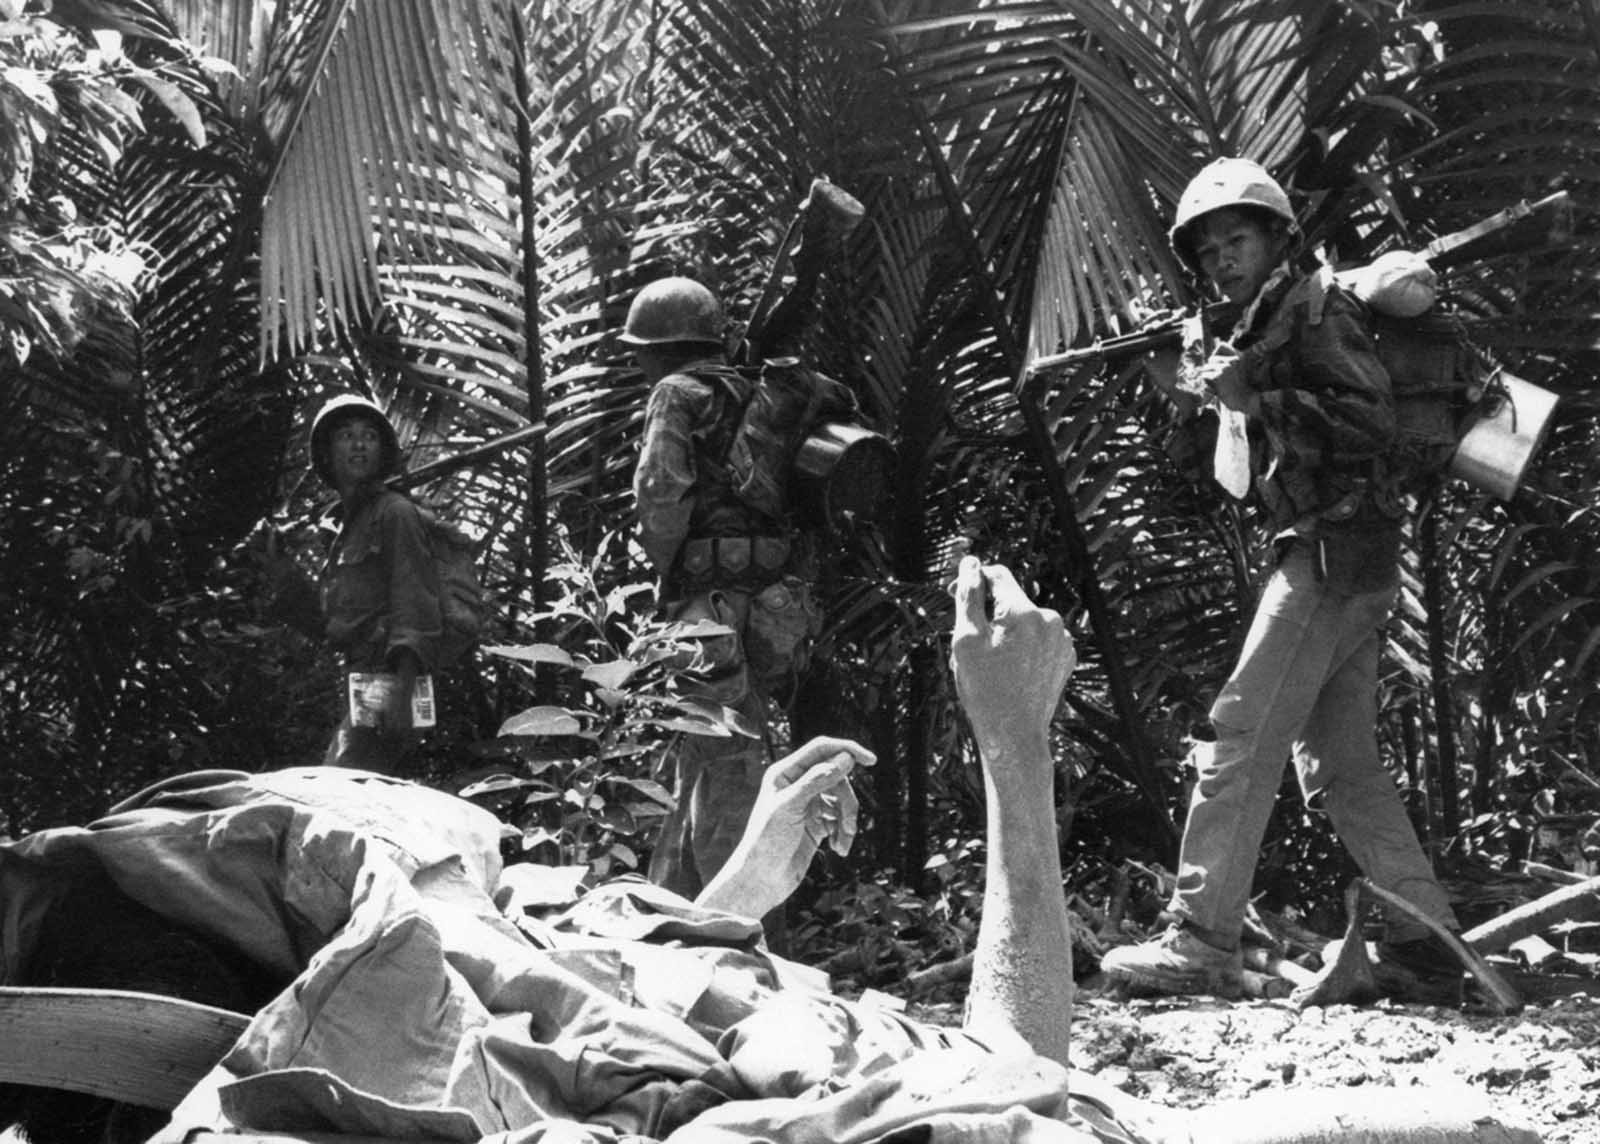 Partially covered, a dying Viet Cong guerrilla raises his hands as South Vietnamese Marines search palm groves near Long Binh in the Mekong Delta, on February 27, 1964. The guerrilla died in a foxhole following a battle between a battalion of South Vietnamese Marines and a unit of Viet Cong.